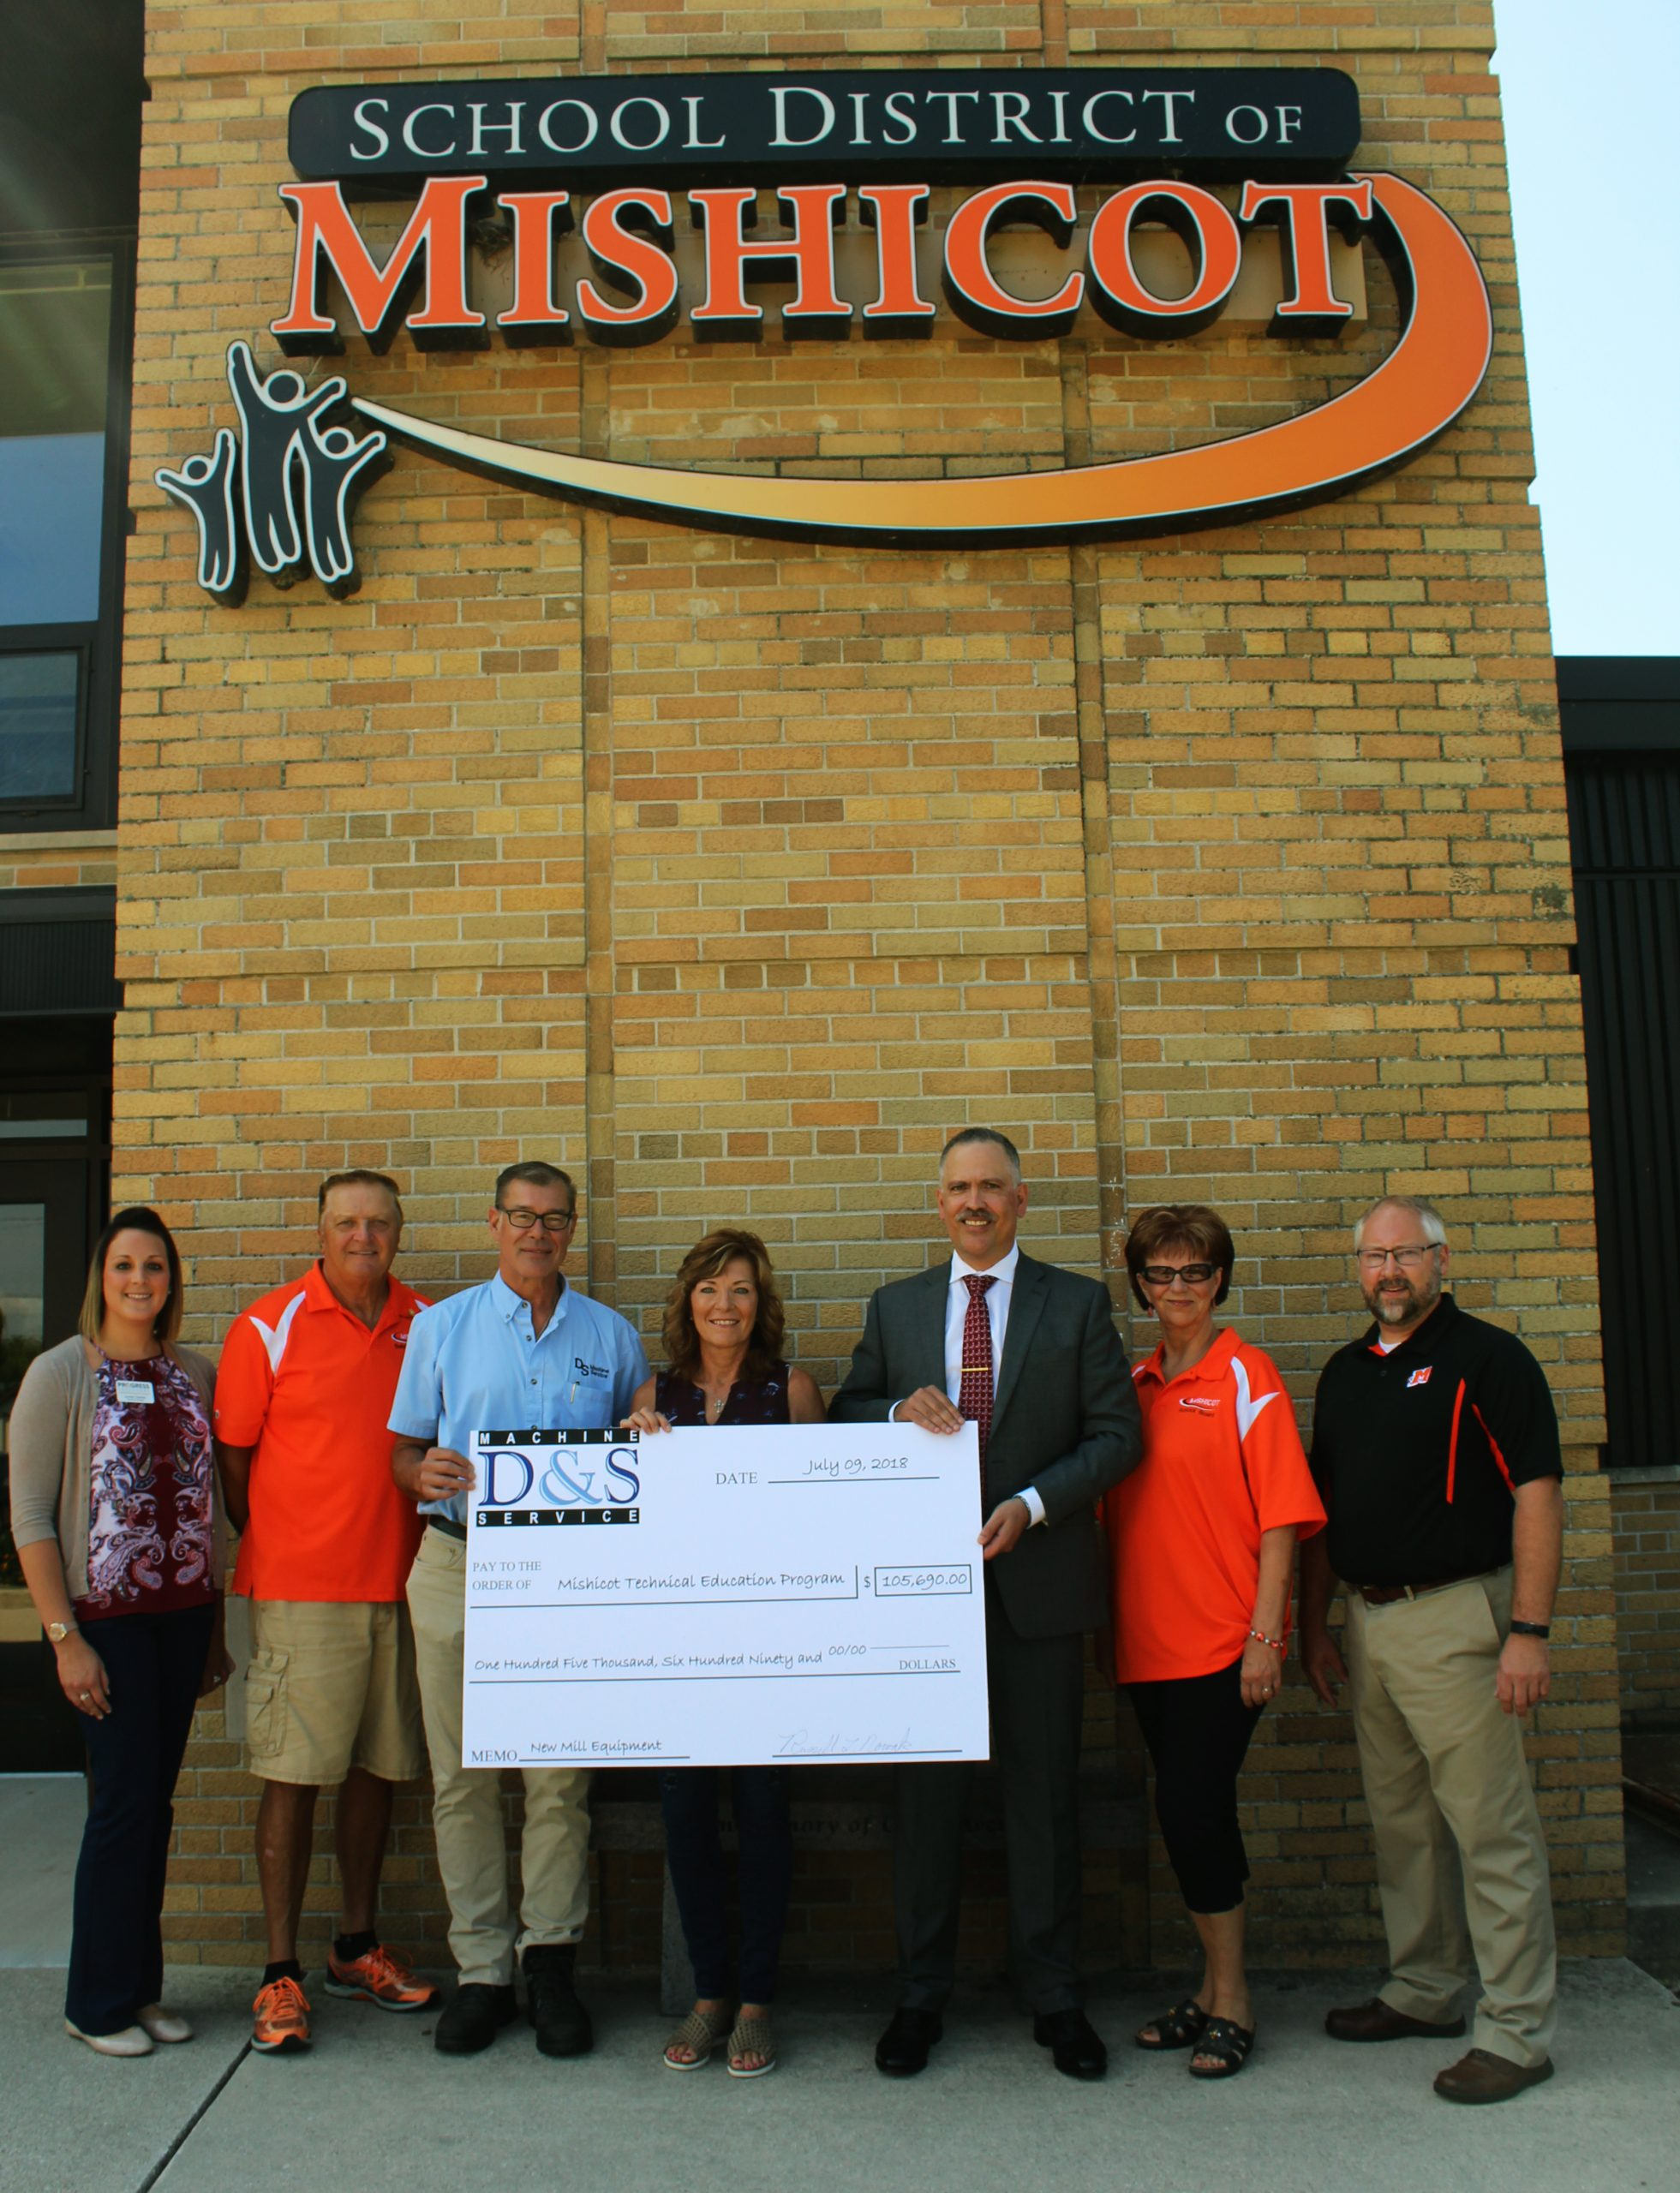 Mishicot High School Receives $100,000 Worth of Manufacturing Equipment